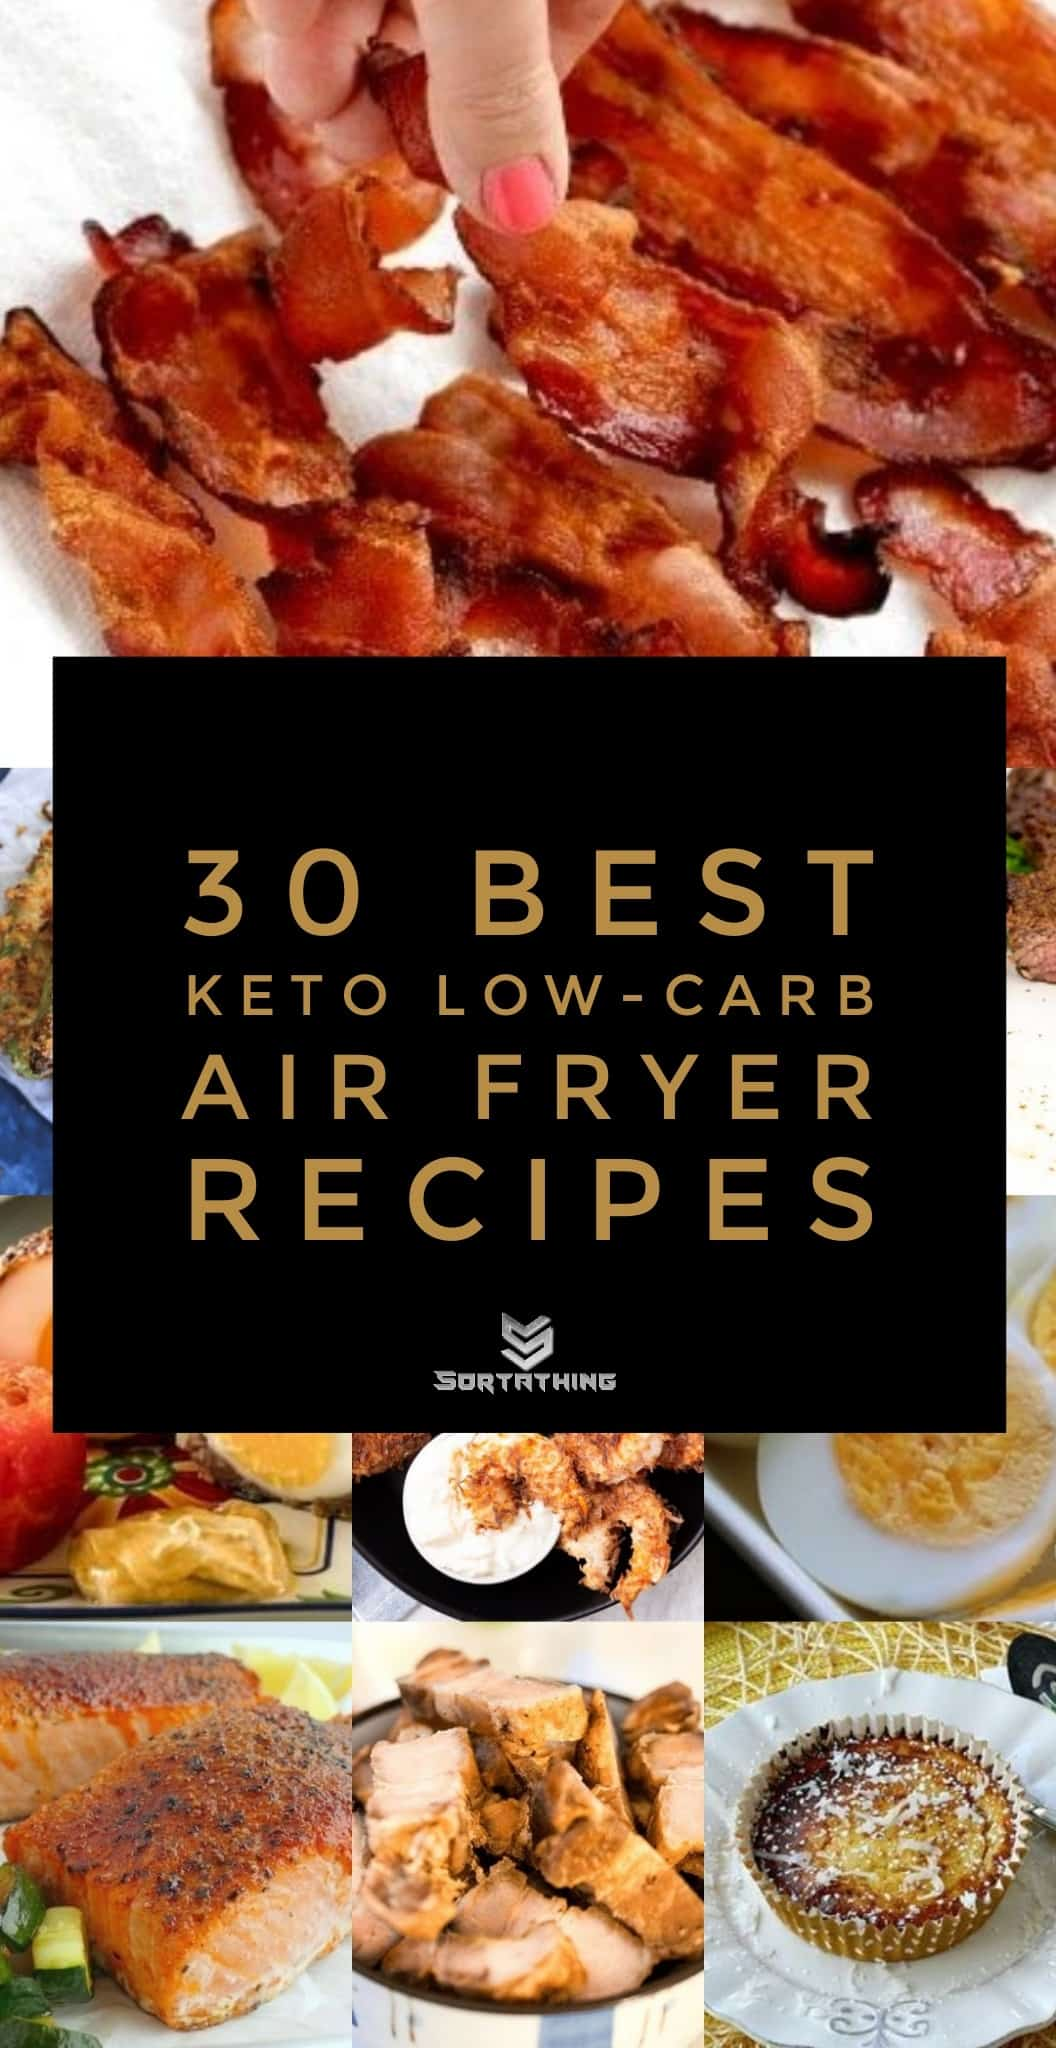 33 Best Keto Low-Carb Air Fryer Recipes Main